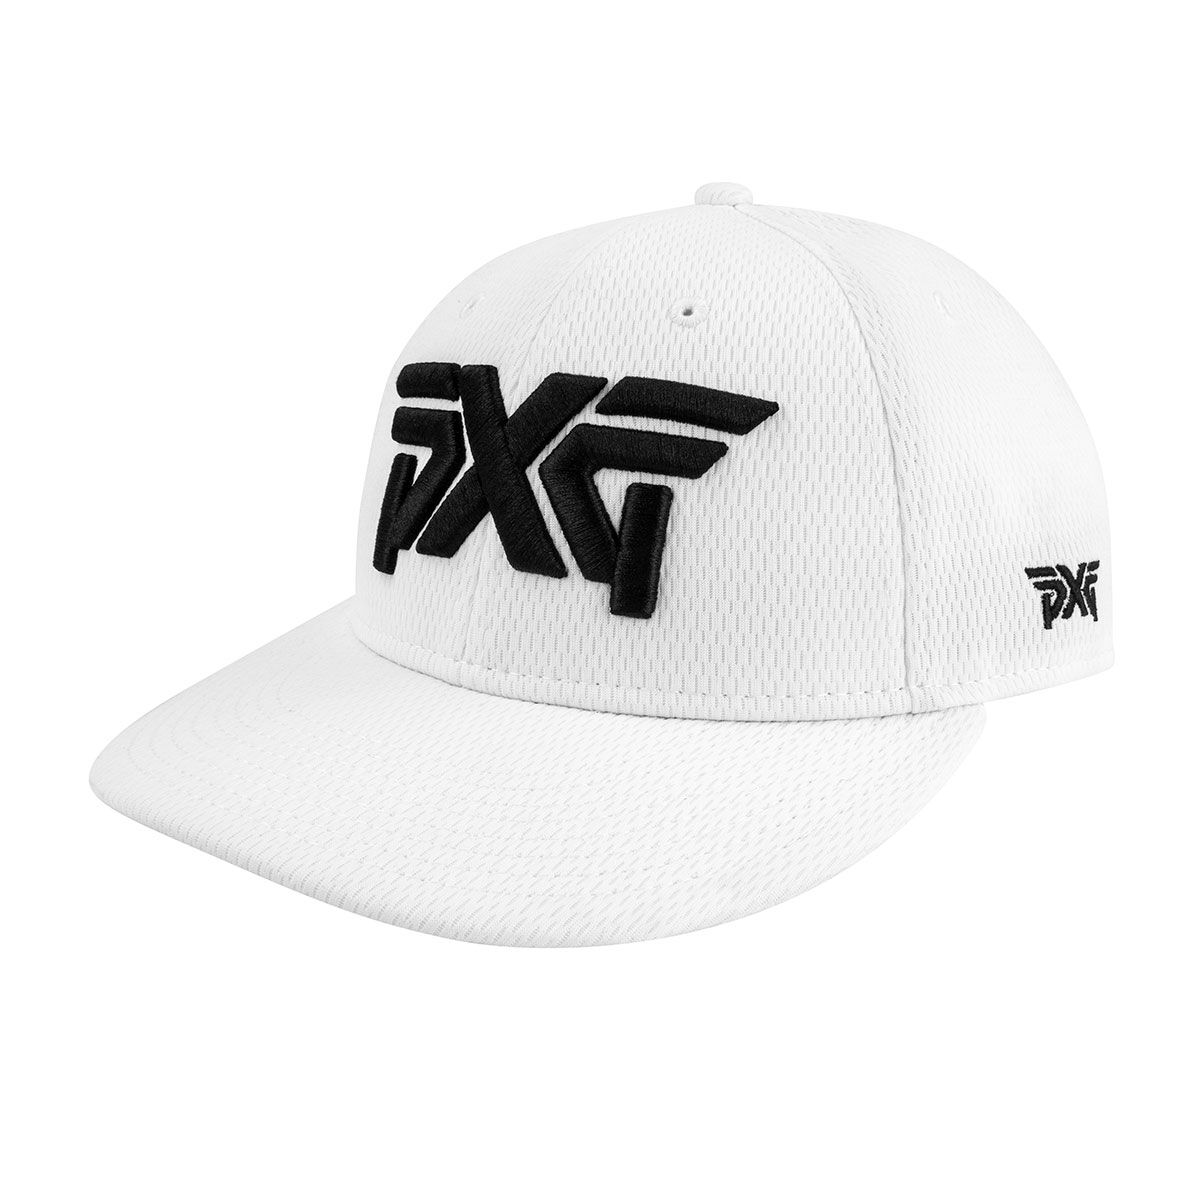 PXG Performance Line 9FIFTY Cap, Male, White, One Size